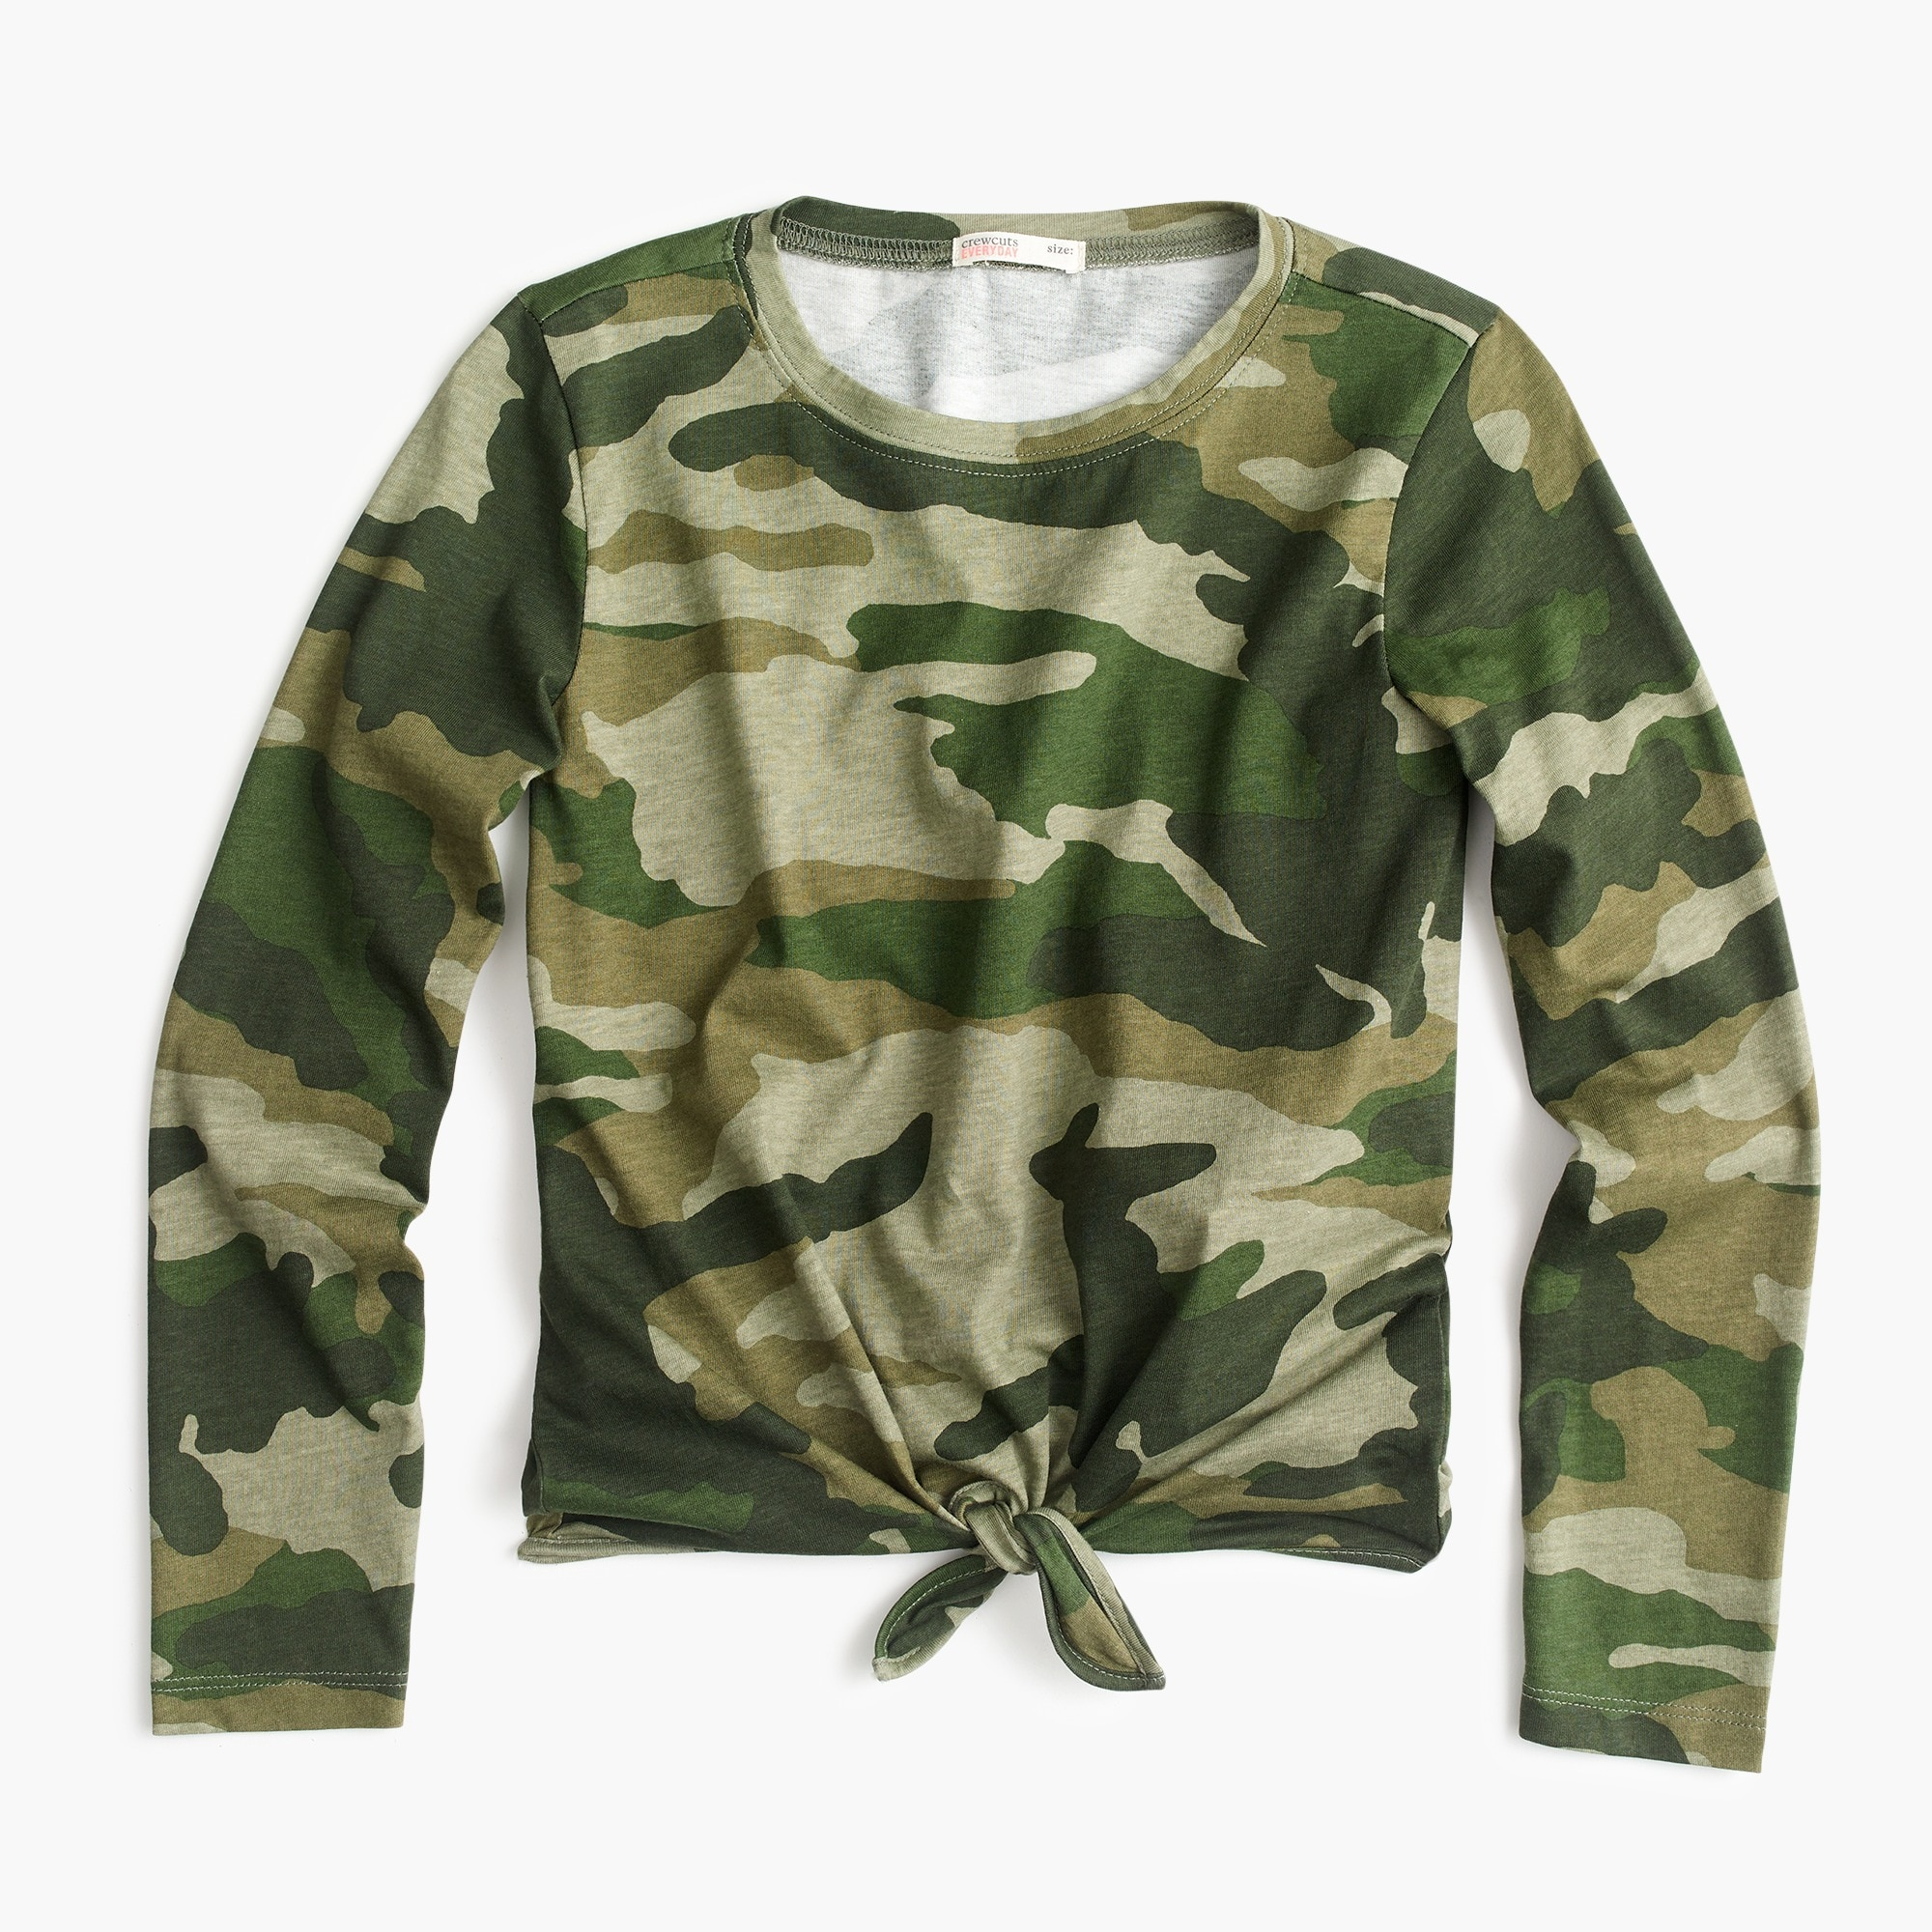 Girls' tie-front long-sleeve T-shirt in camo